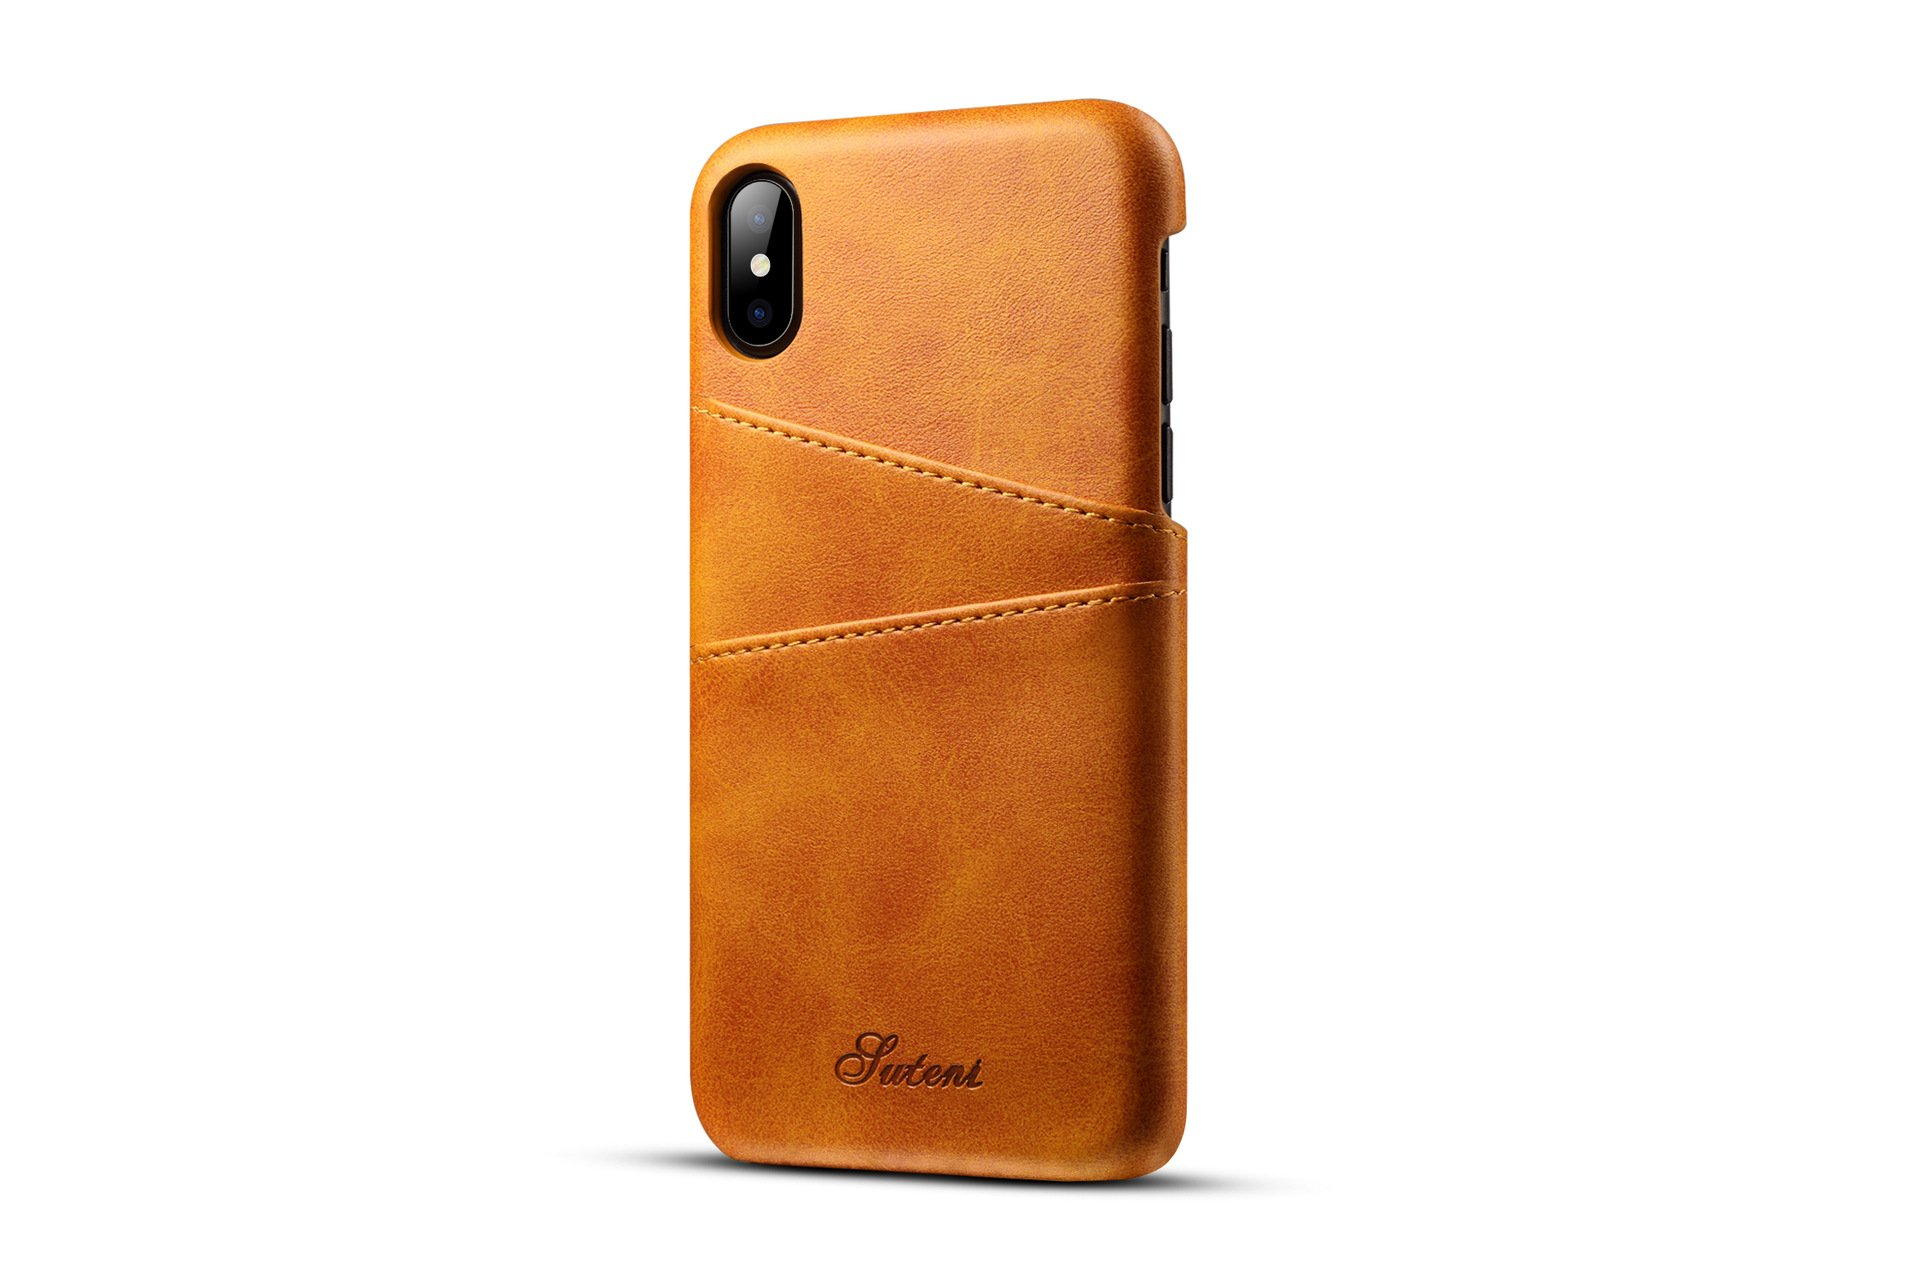 Phone 7 Plus Leather Card Cover,Slim Professional iPhone 8 Plus Cover with 2 Card Holder Slots Minimalist Vintage Synthetic Leather Wallet Case